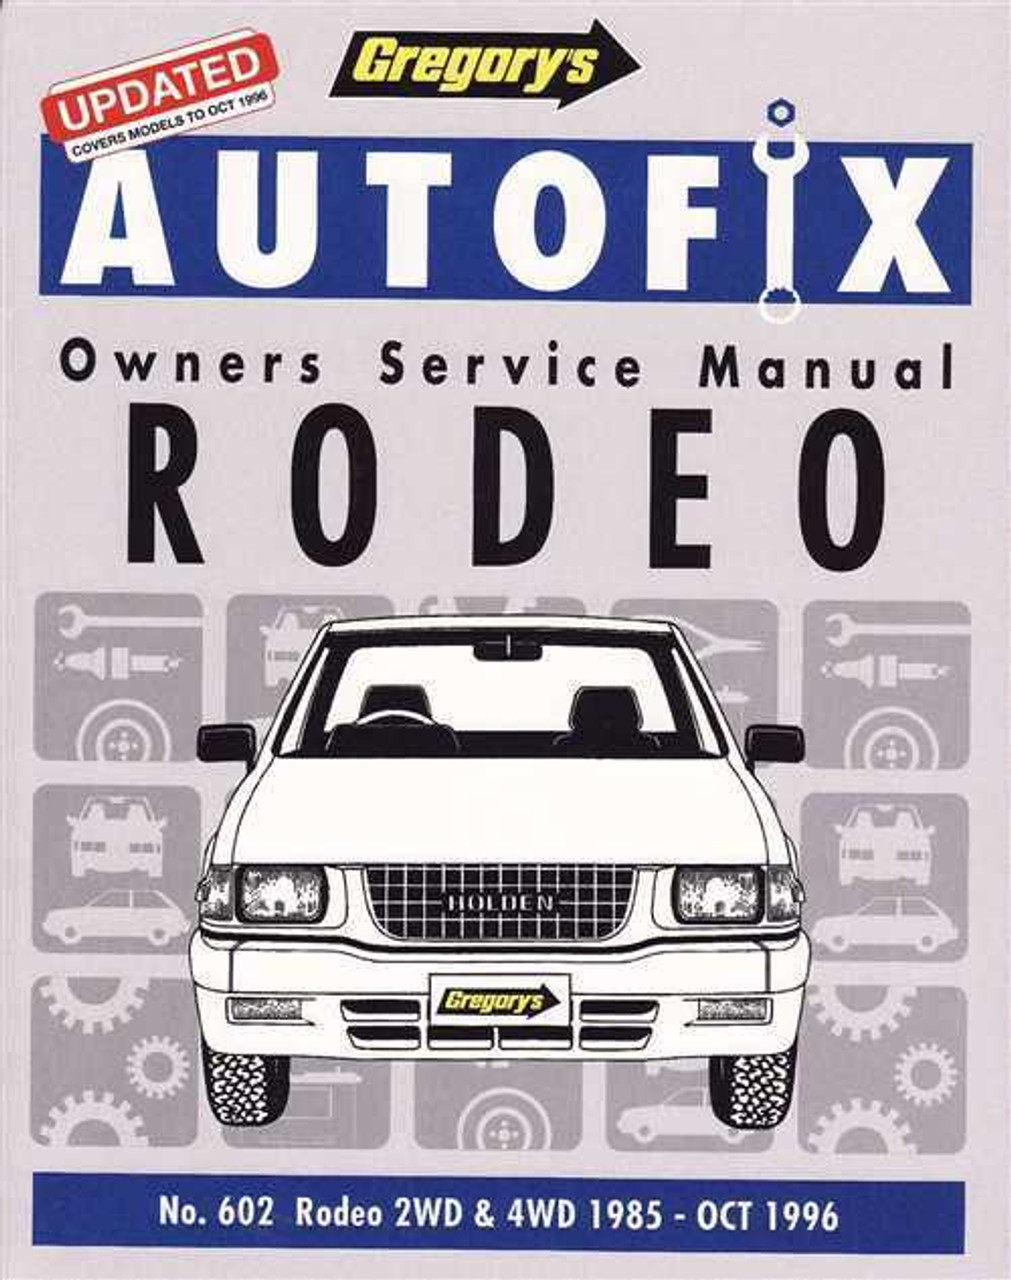 holden rodeo 2wd 4wd petrol 1985 1996 workshop manual rh automotobookshop com au 1990 Holden Rodeo Done Up Holden Rodeo